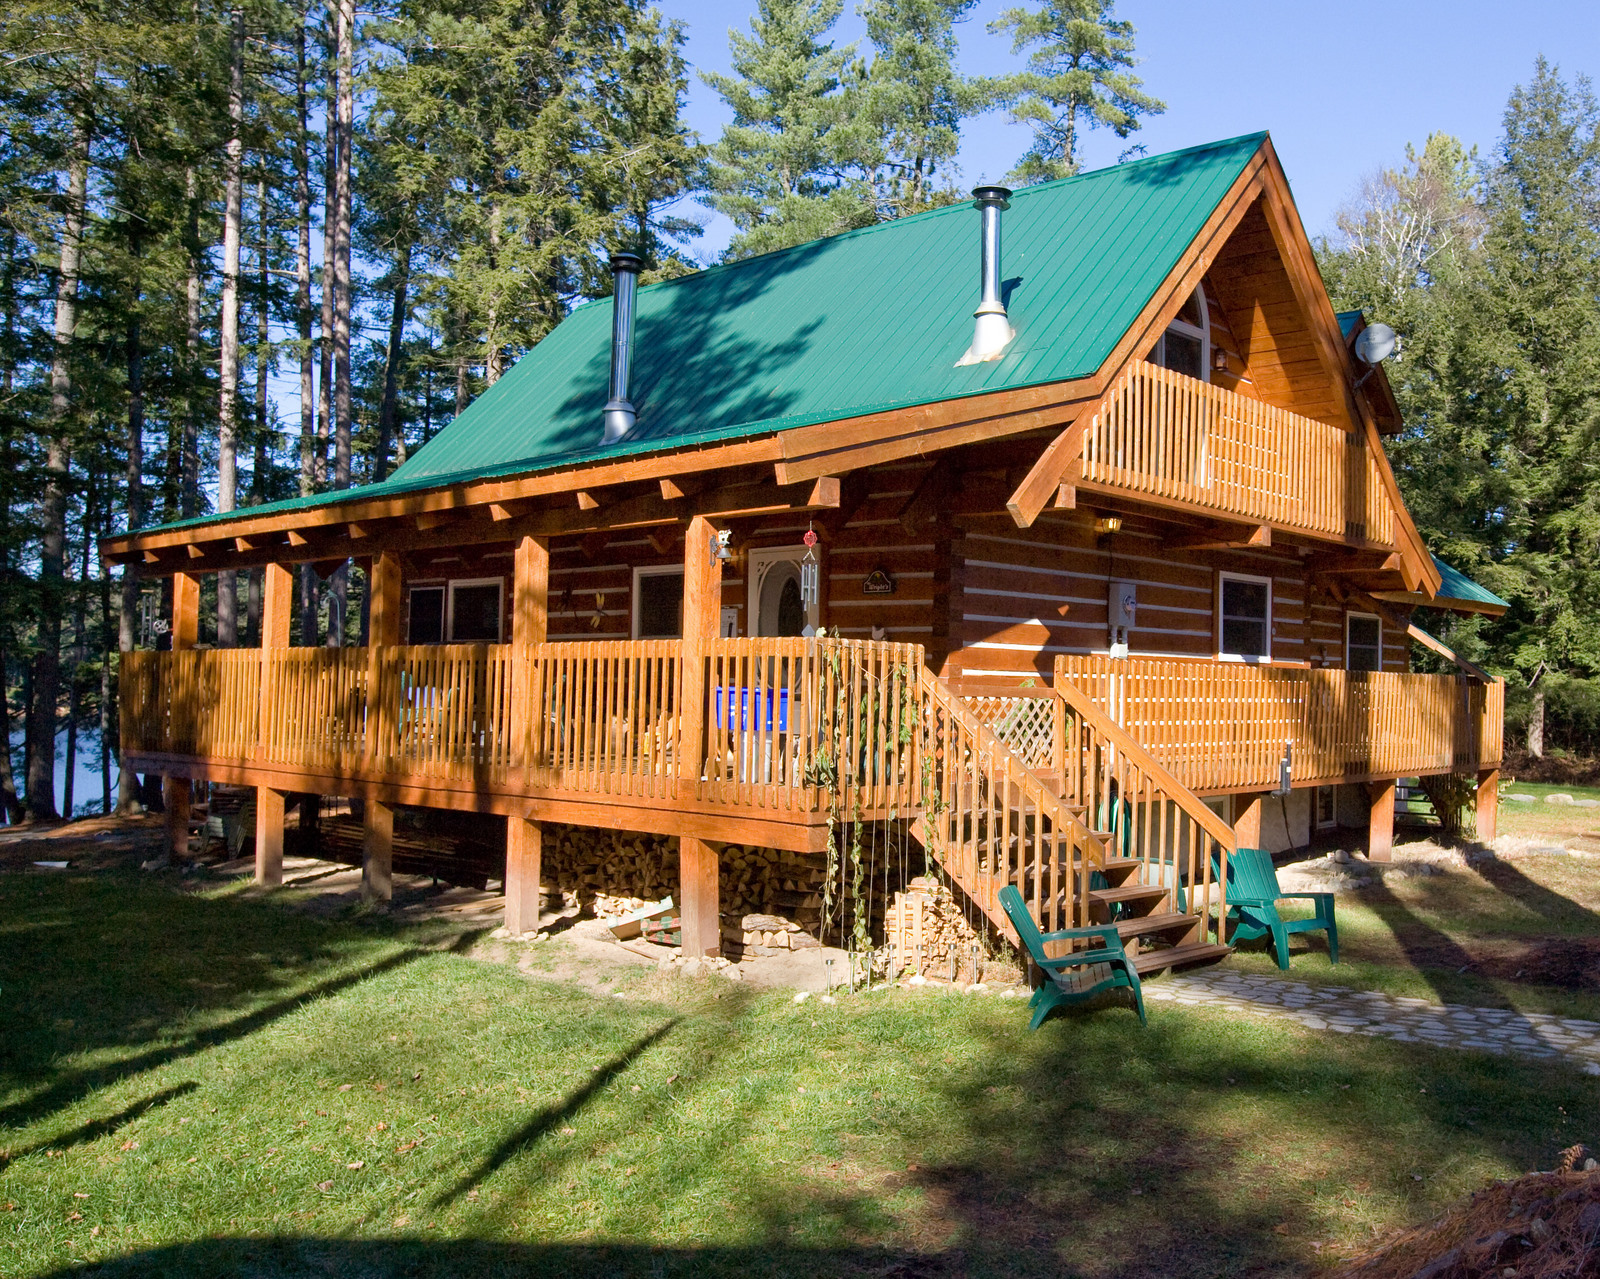 Affordable log homes cottages and cabins from vancouver for Small cabins and cottages